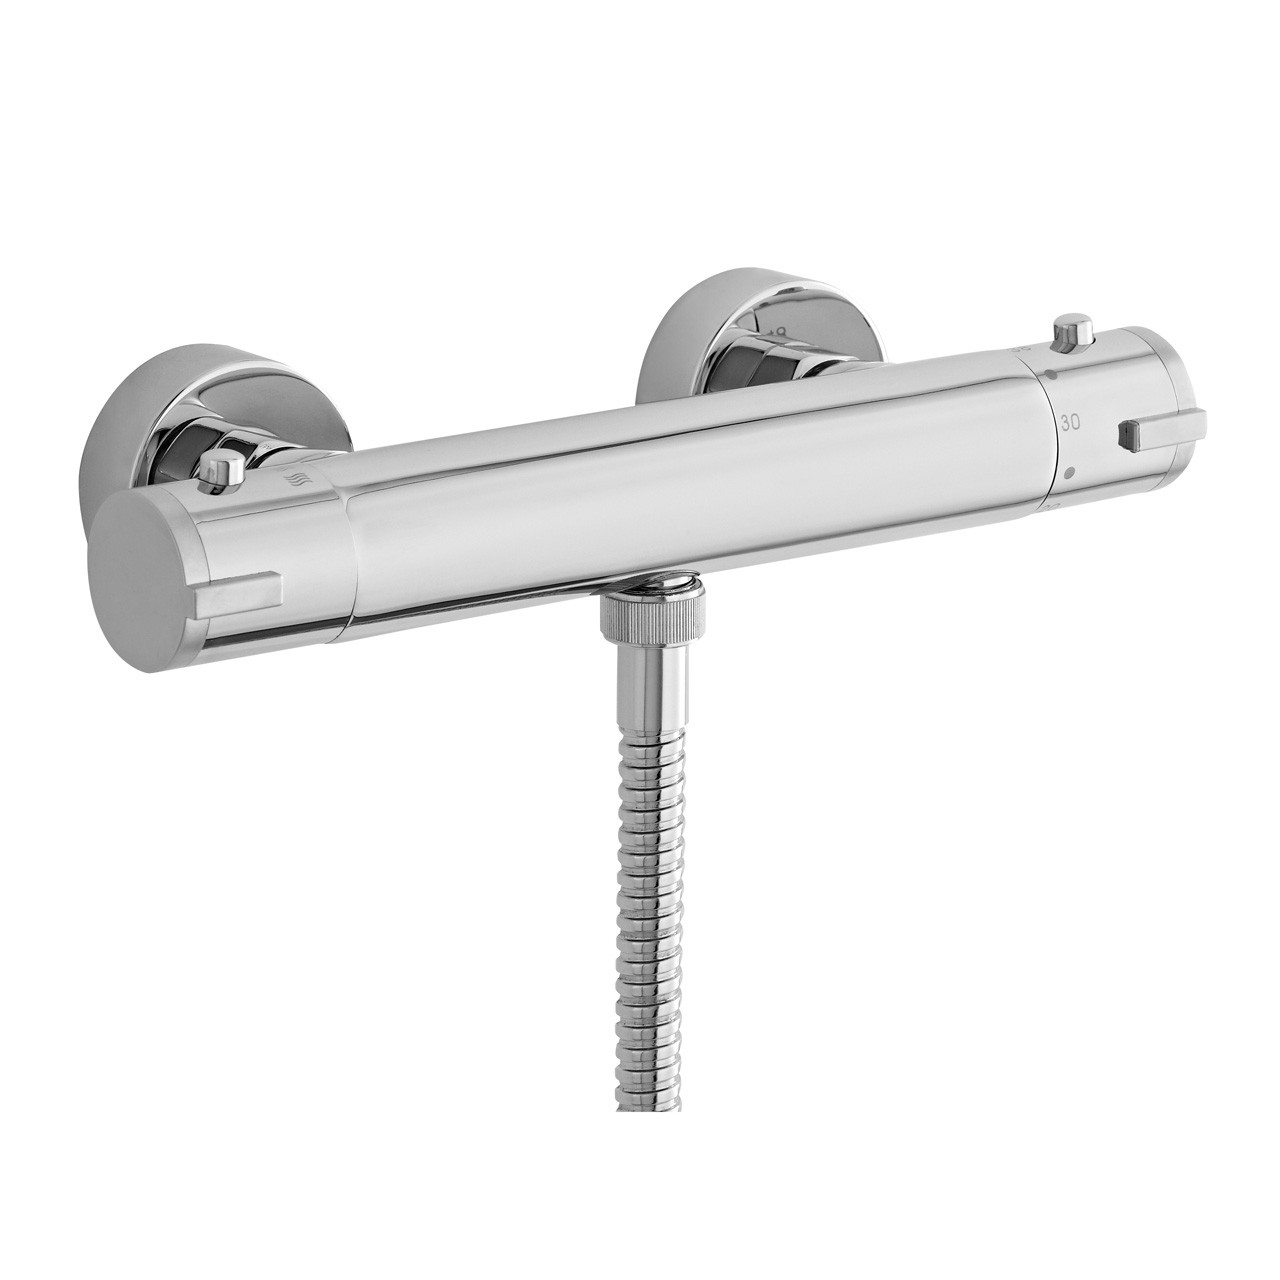 Ultra Minimalist Bar Valve Bottom Outlet - VBS009